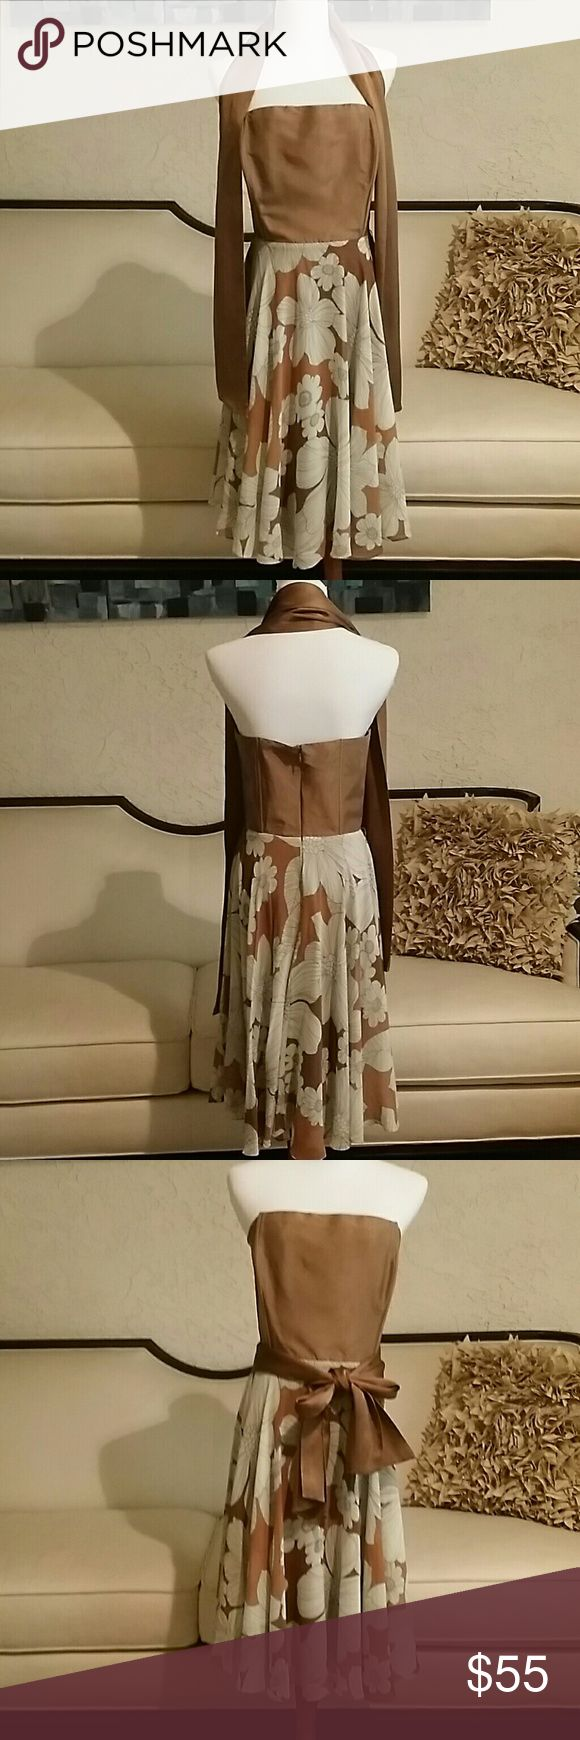 Speigel Special Occasion Sundress Speigel silk and Sheer.  Silk is a Stunning Copper/Gold.  Great Condition Worn 1 Time to Class Reunion. Dresses Strapless